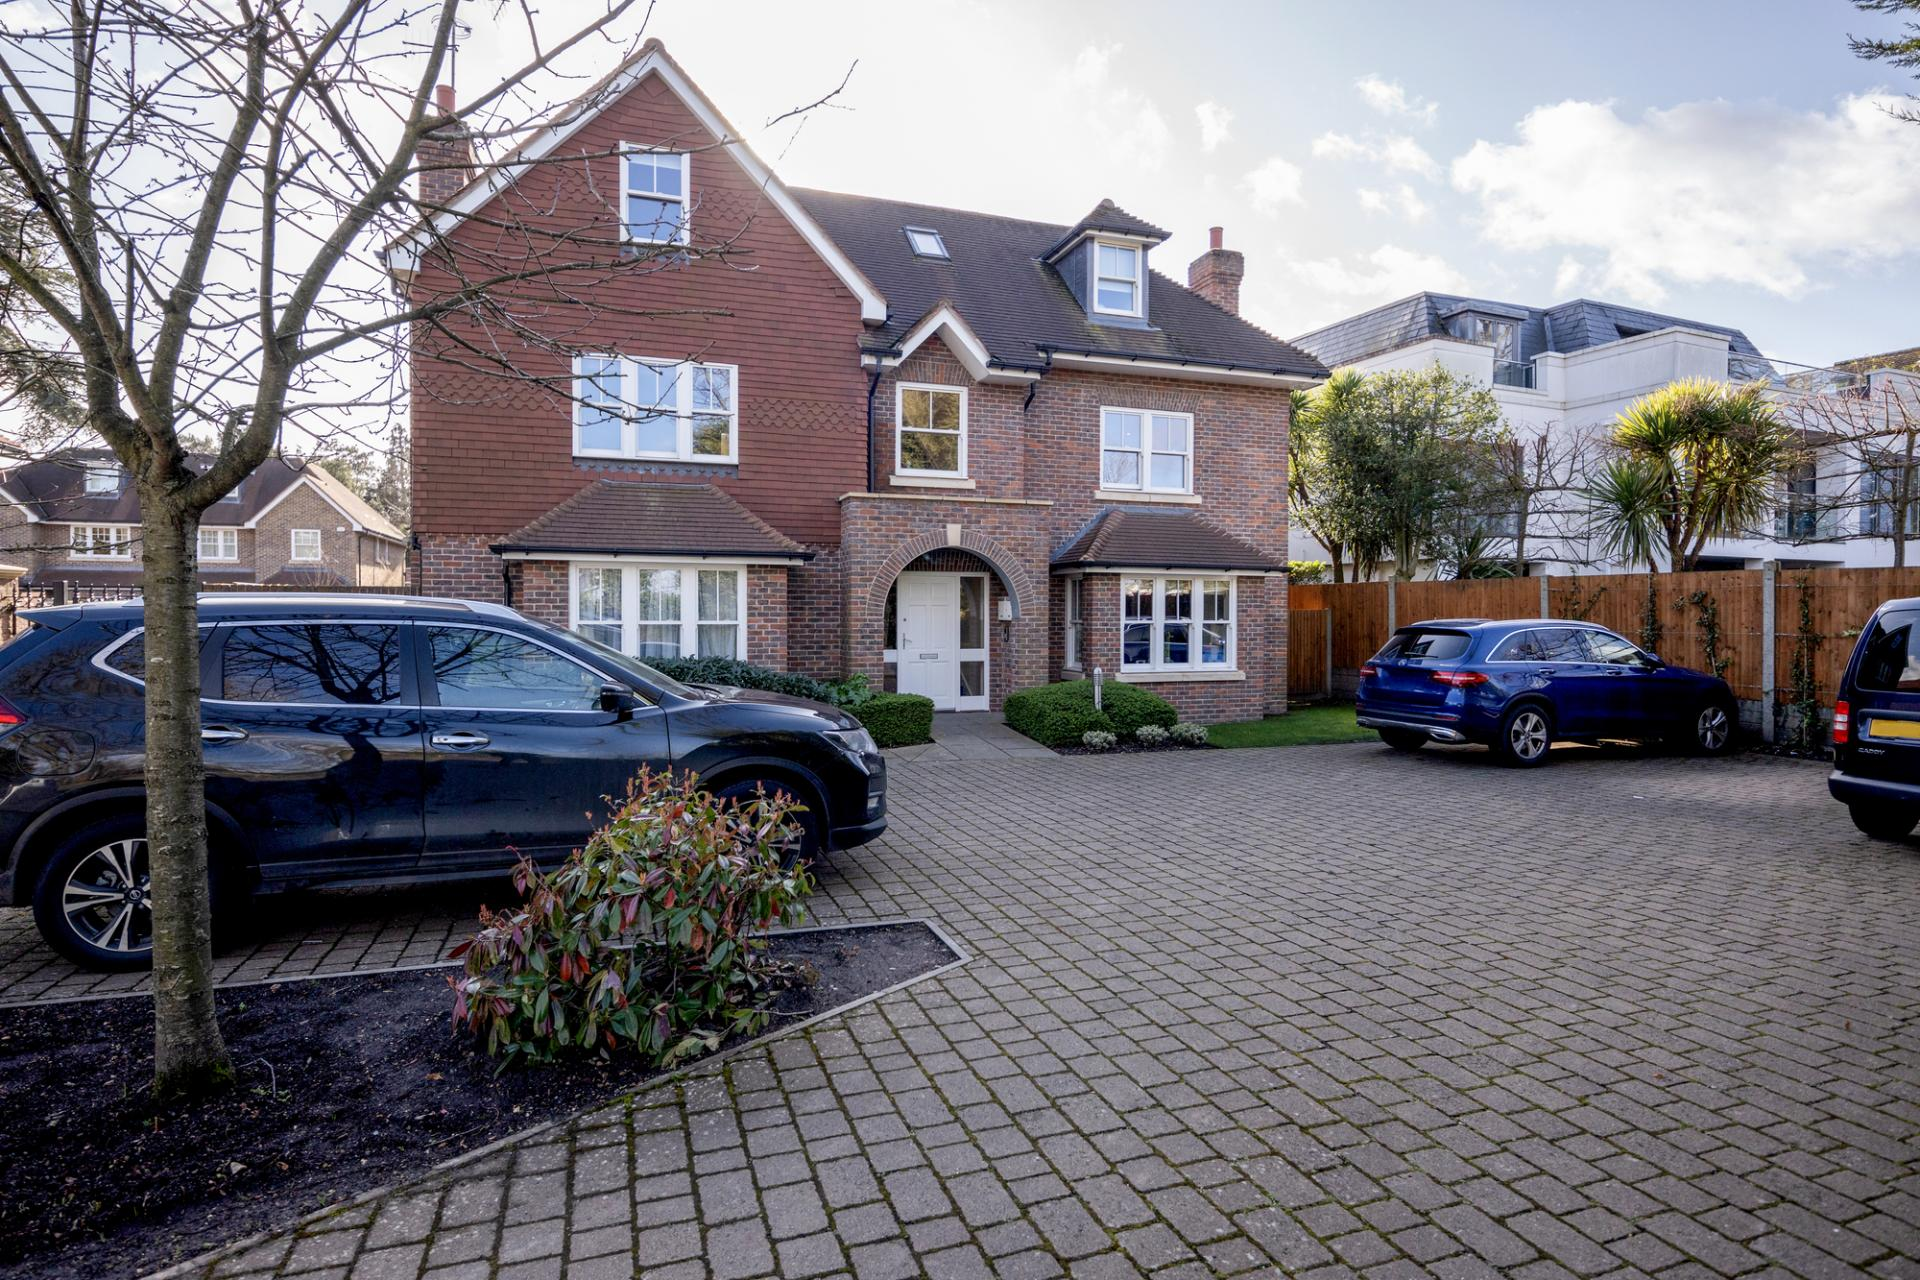 Exterior of Little Orchard Place Apartments, Centre, Esher